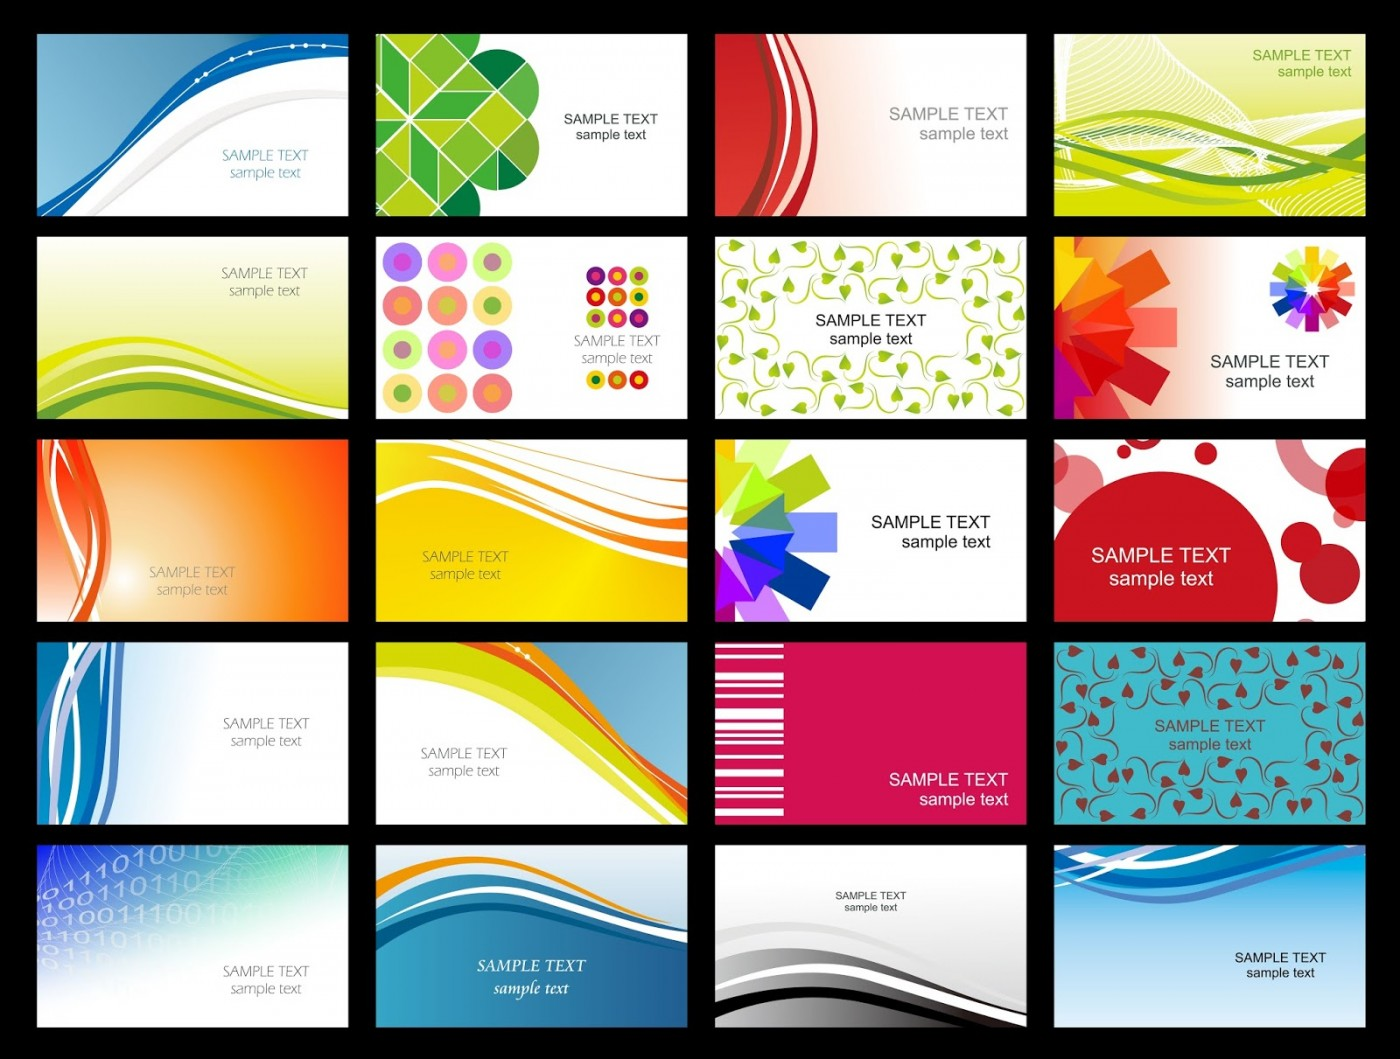 Word Busines Card Template Free Printable Idea  Microsoft 2007 Double Sided Download Blank1400